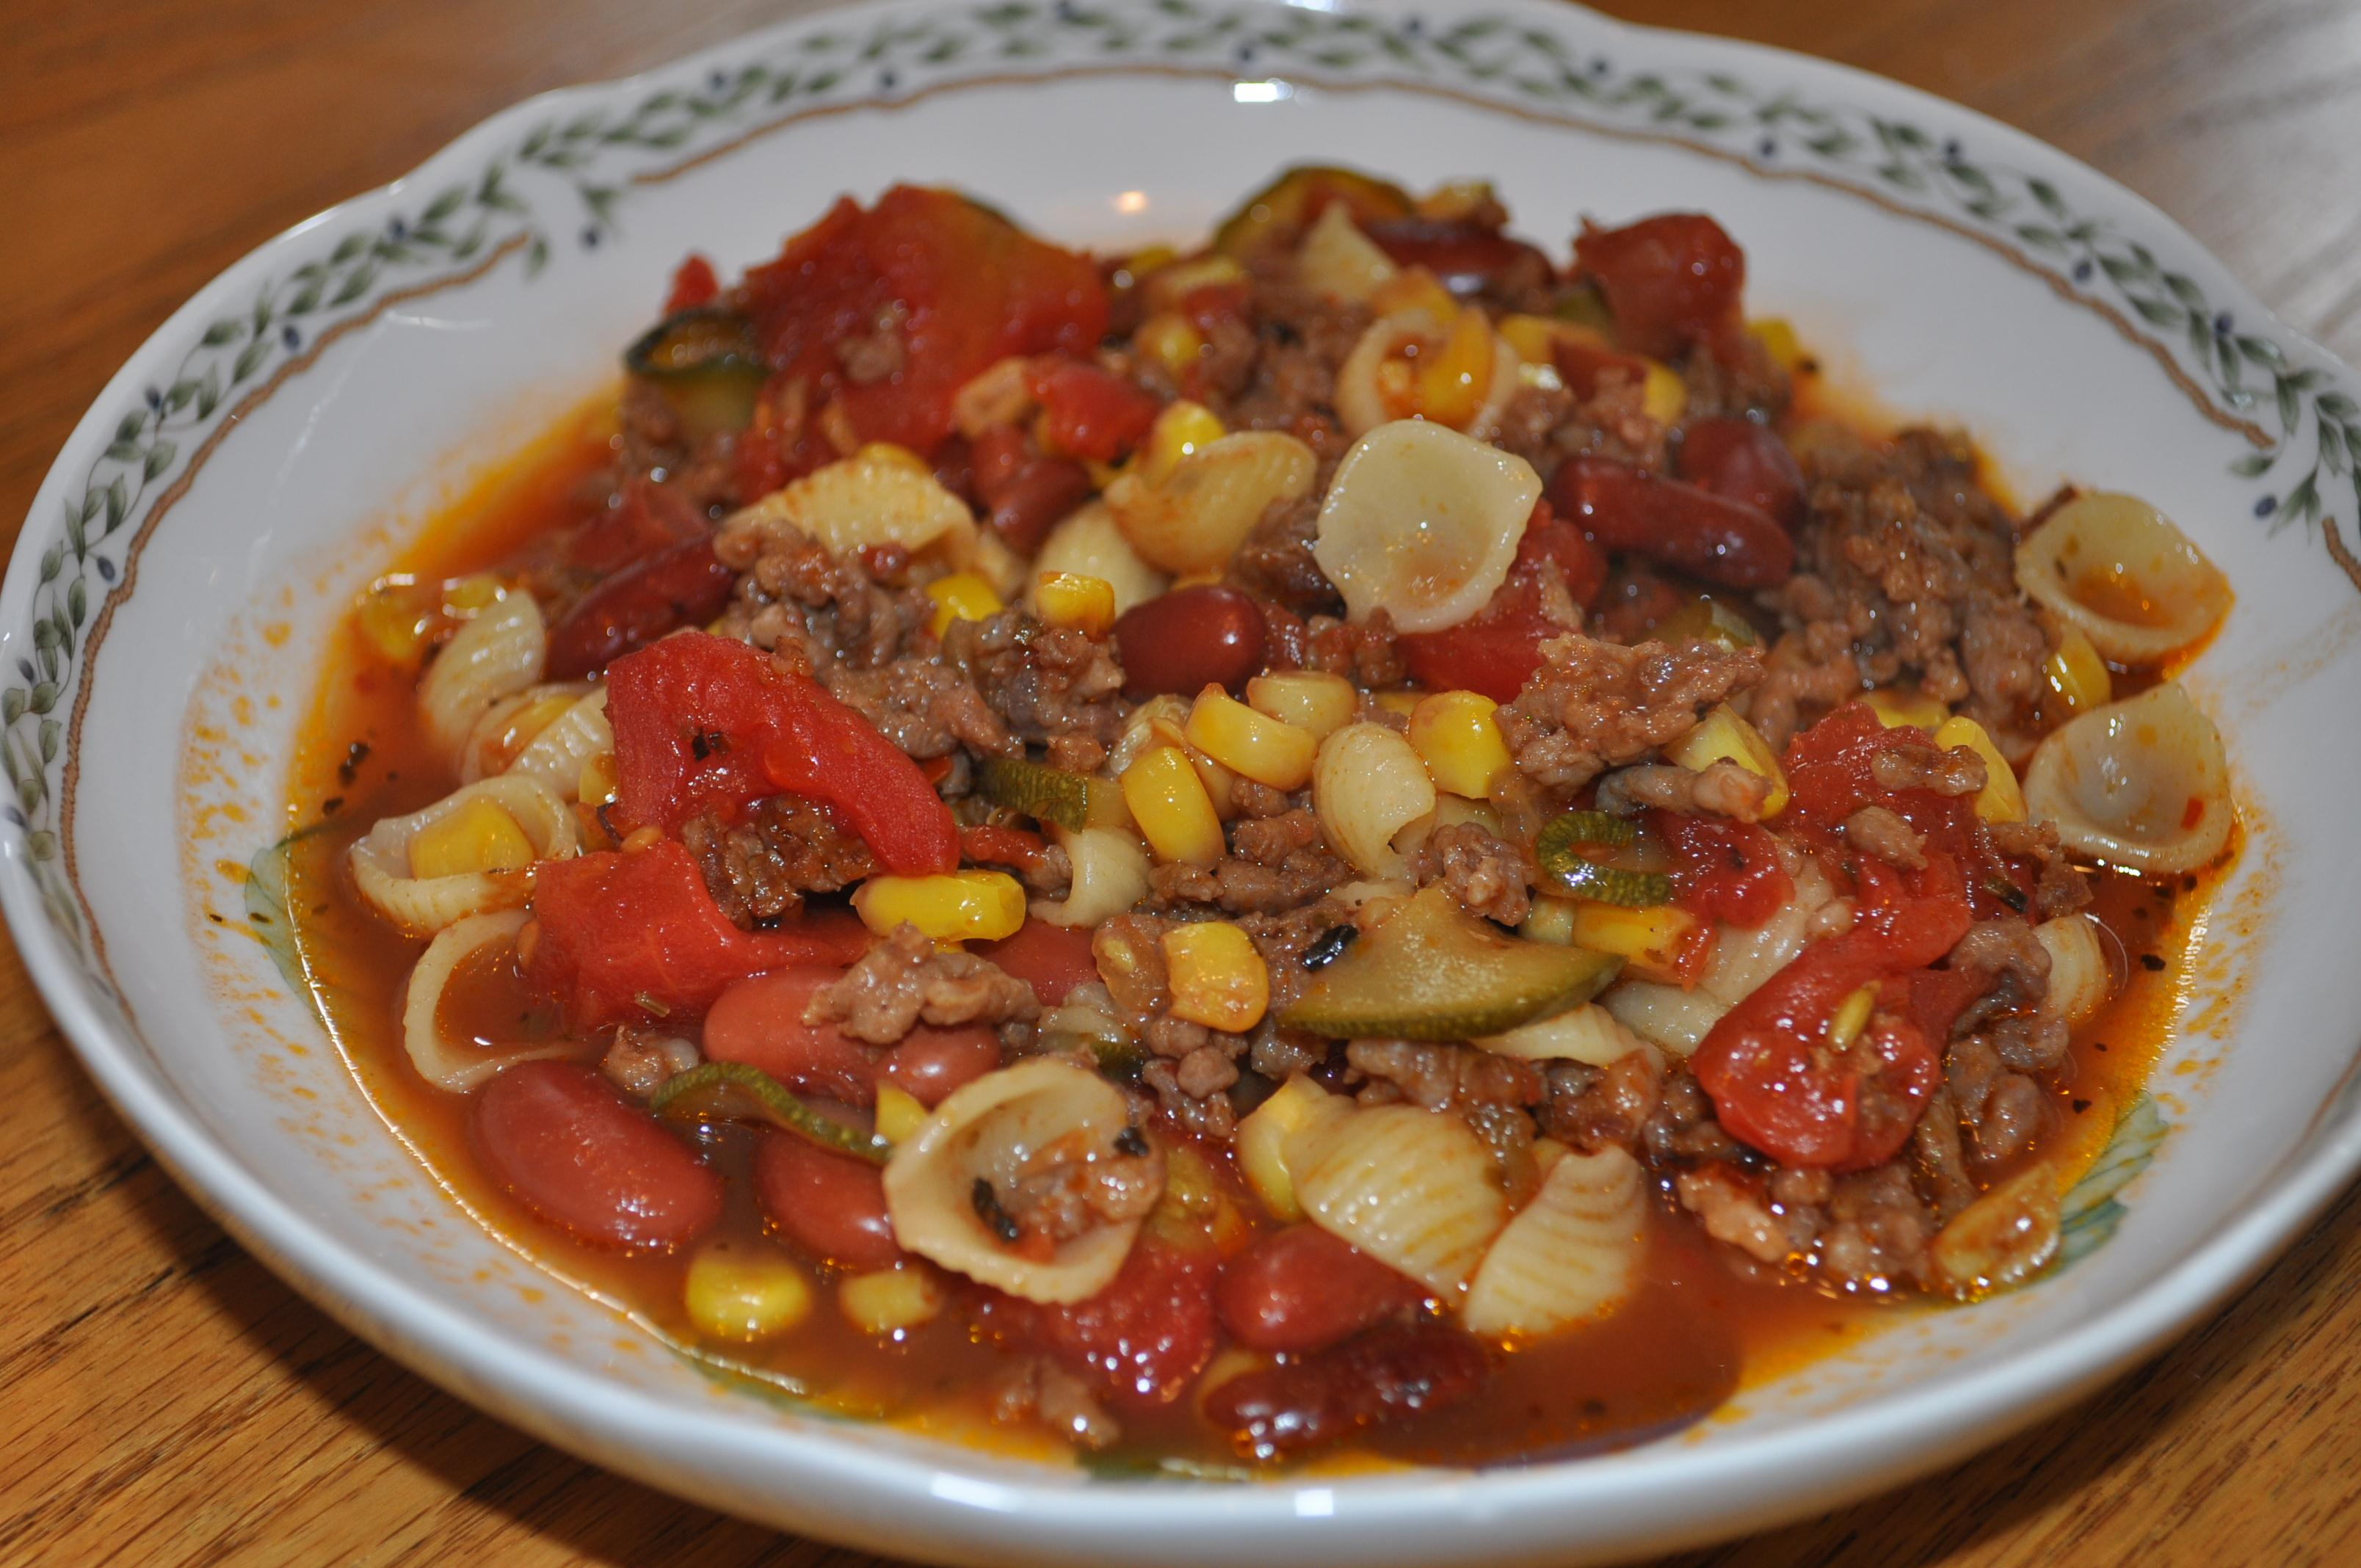 Weekend Cooking: Italian Sausage and Vegetable Stew | Bermudaonion's ...